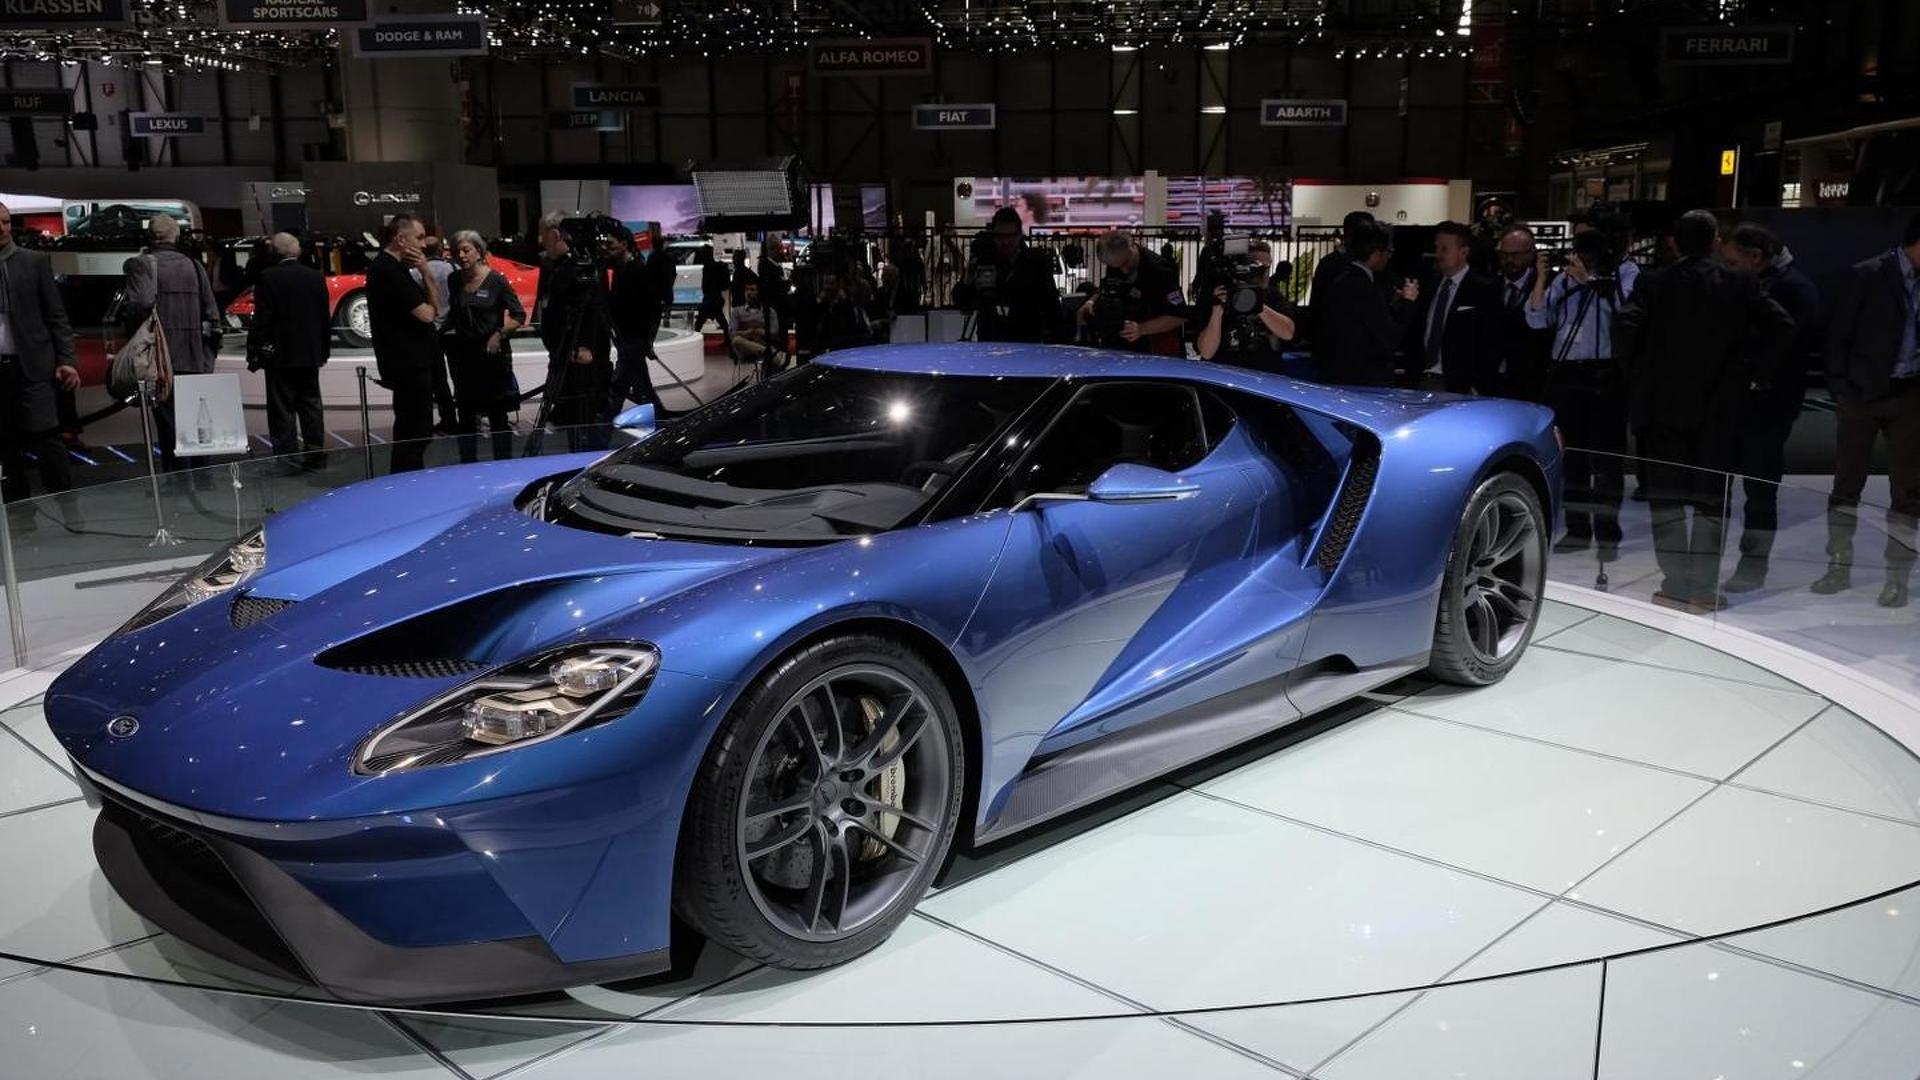 Ford Gt To Cost Around  Annual Production Capped At  Units